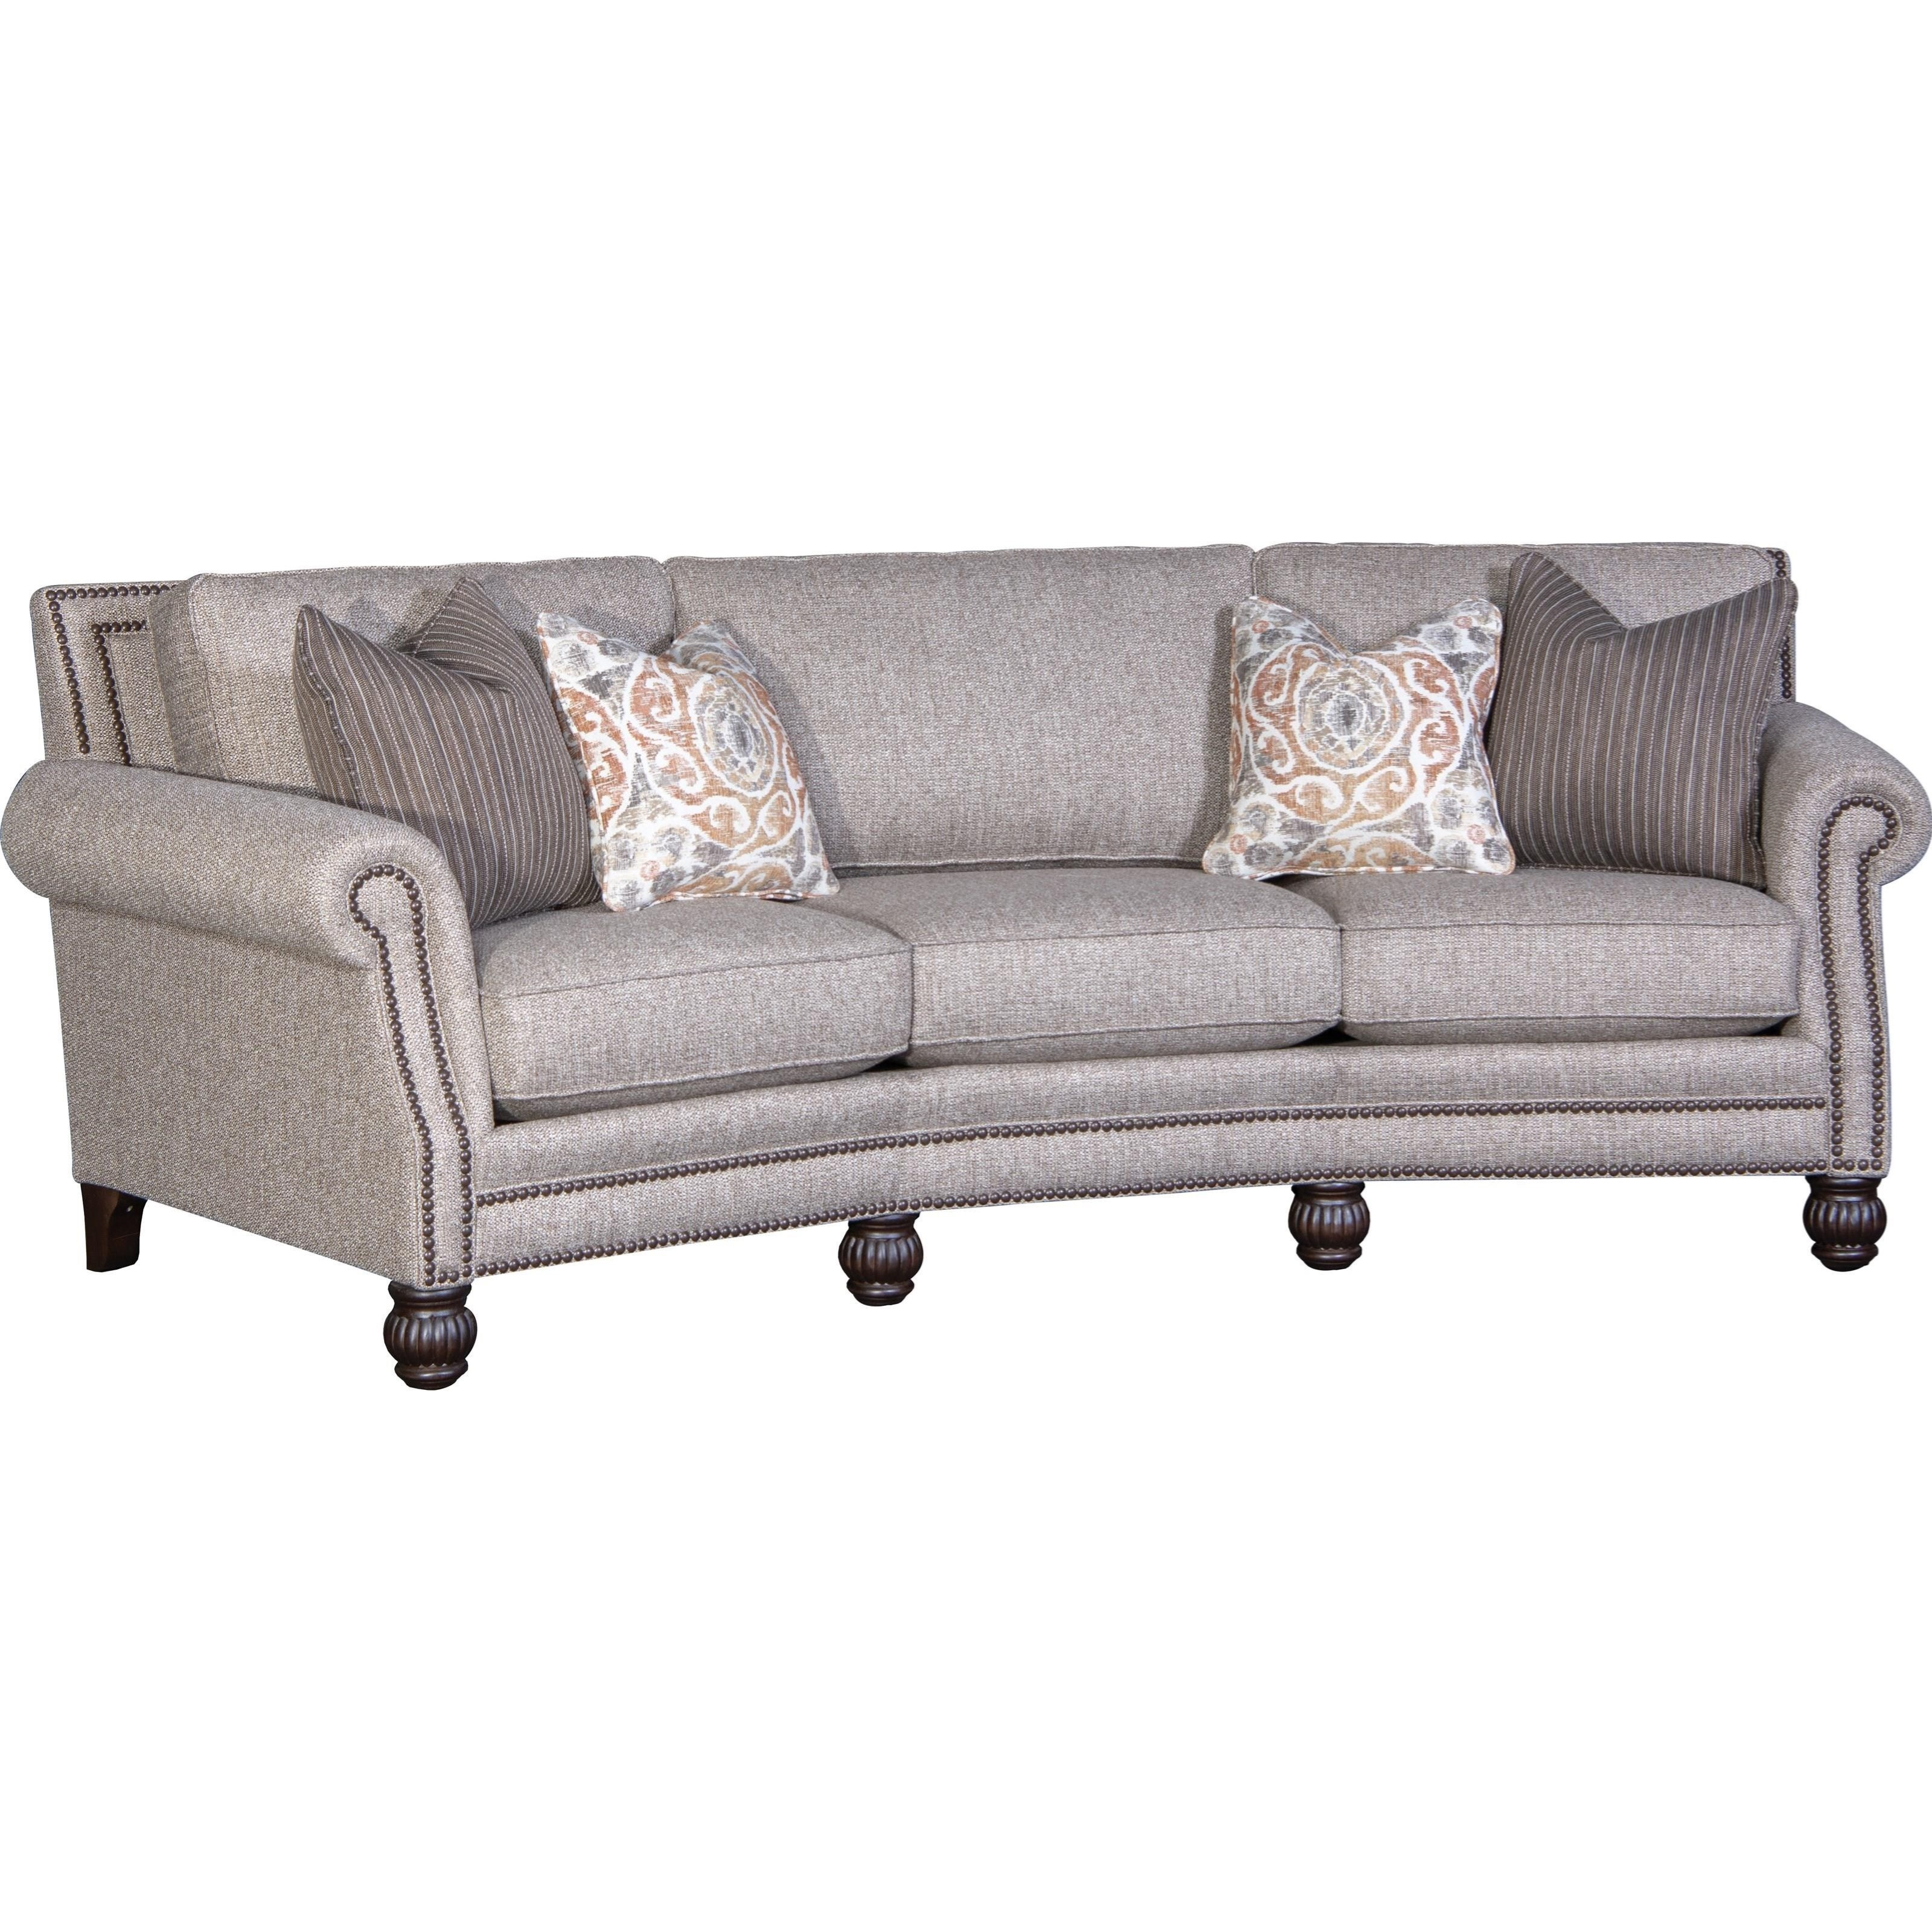 4300 Mayo Conversation Sofa by Mayo at Wilcox Furniture